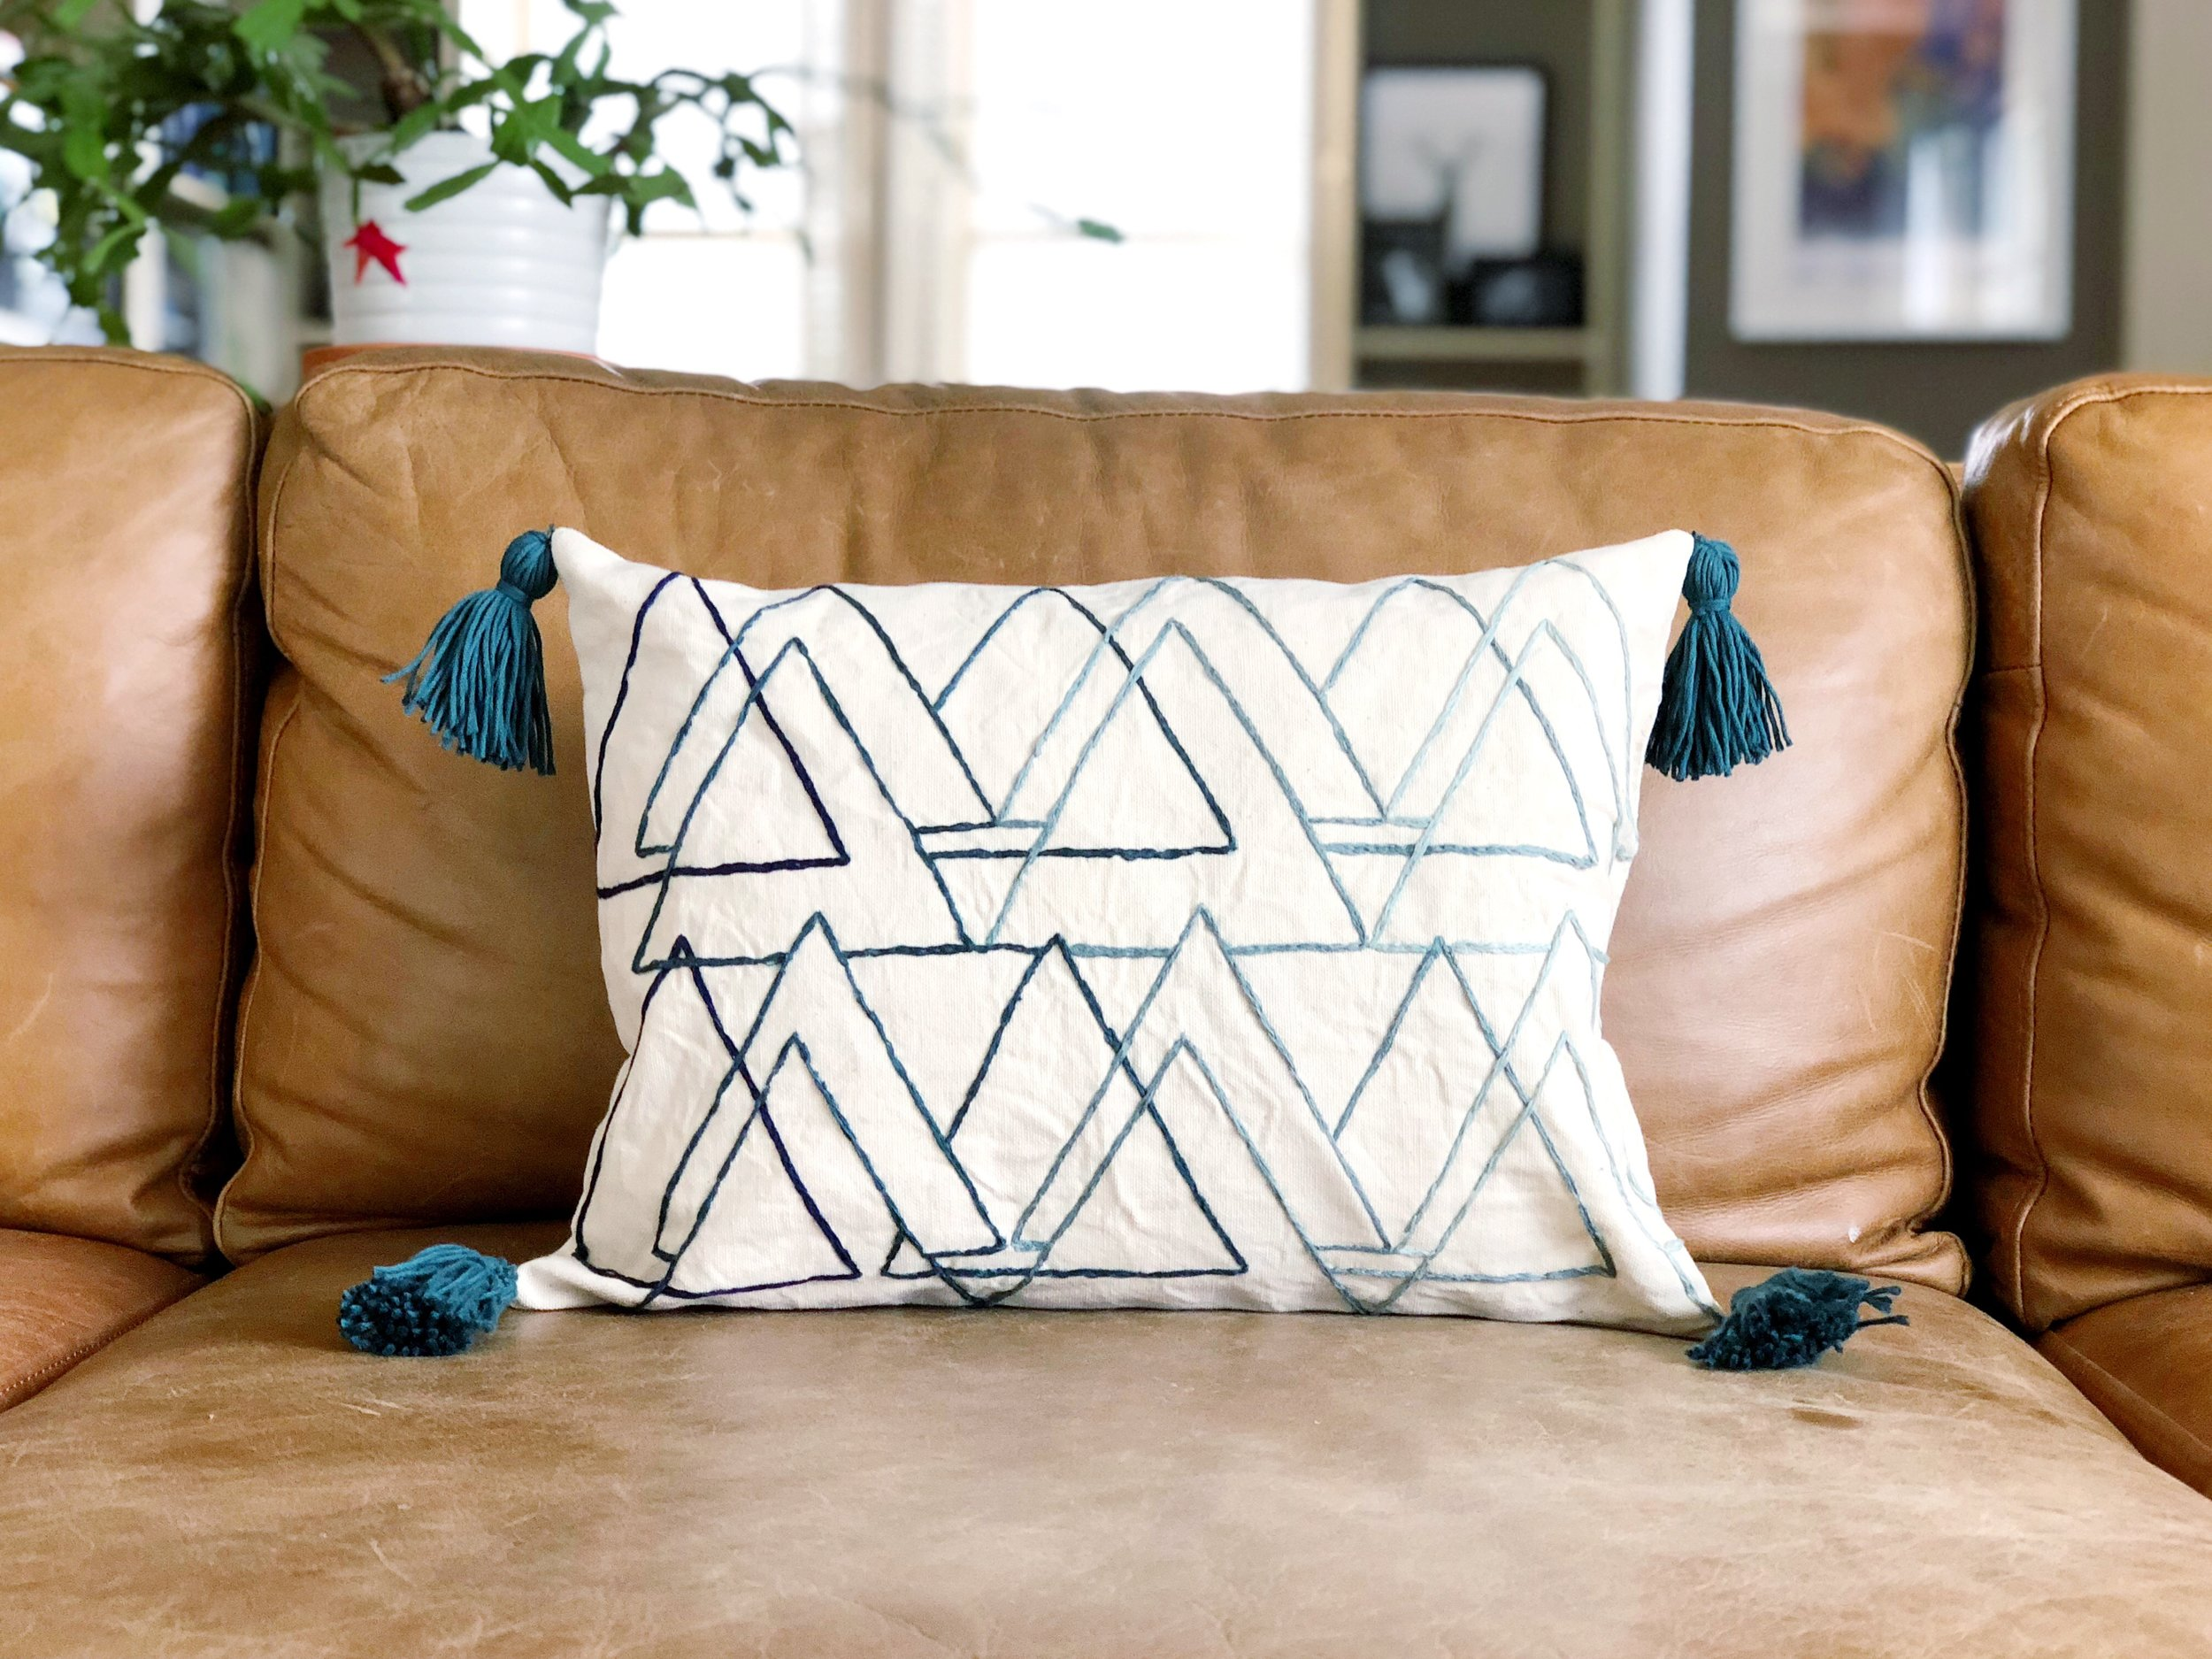 magnolia market inspired embroidered pillow with tassels.jpg